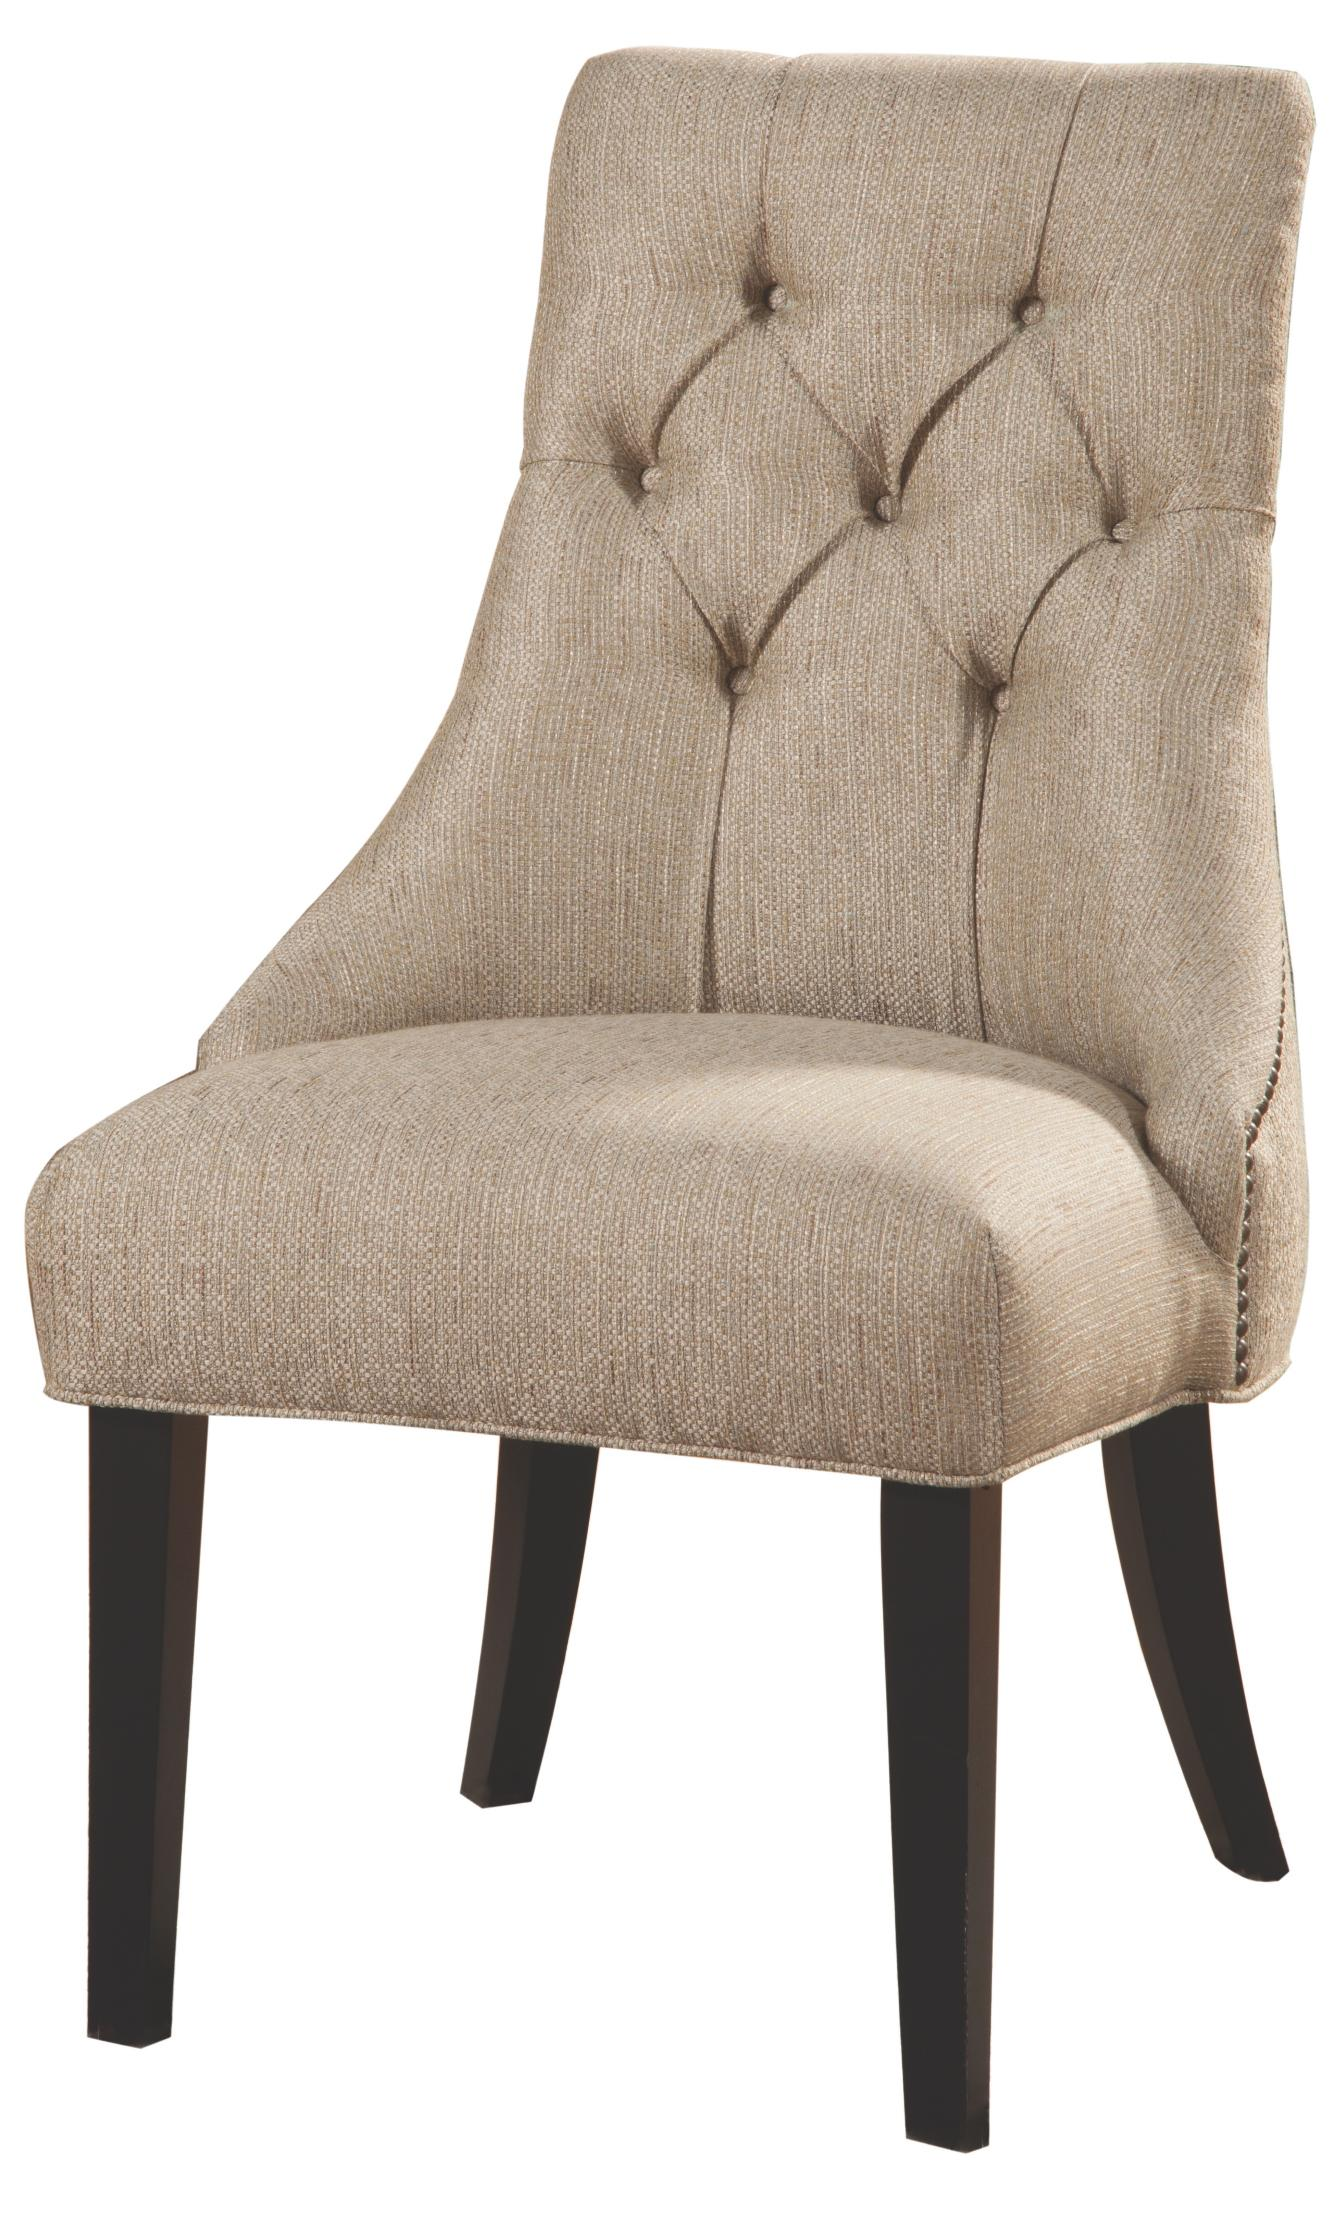 tufted side chair garden swing nz accent seating quality furniture at